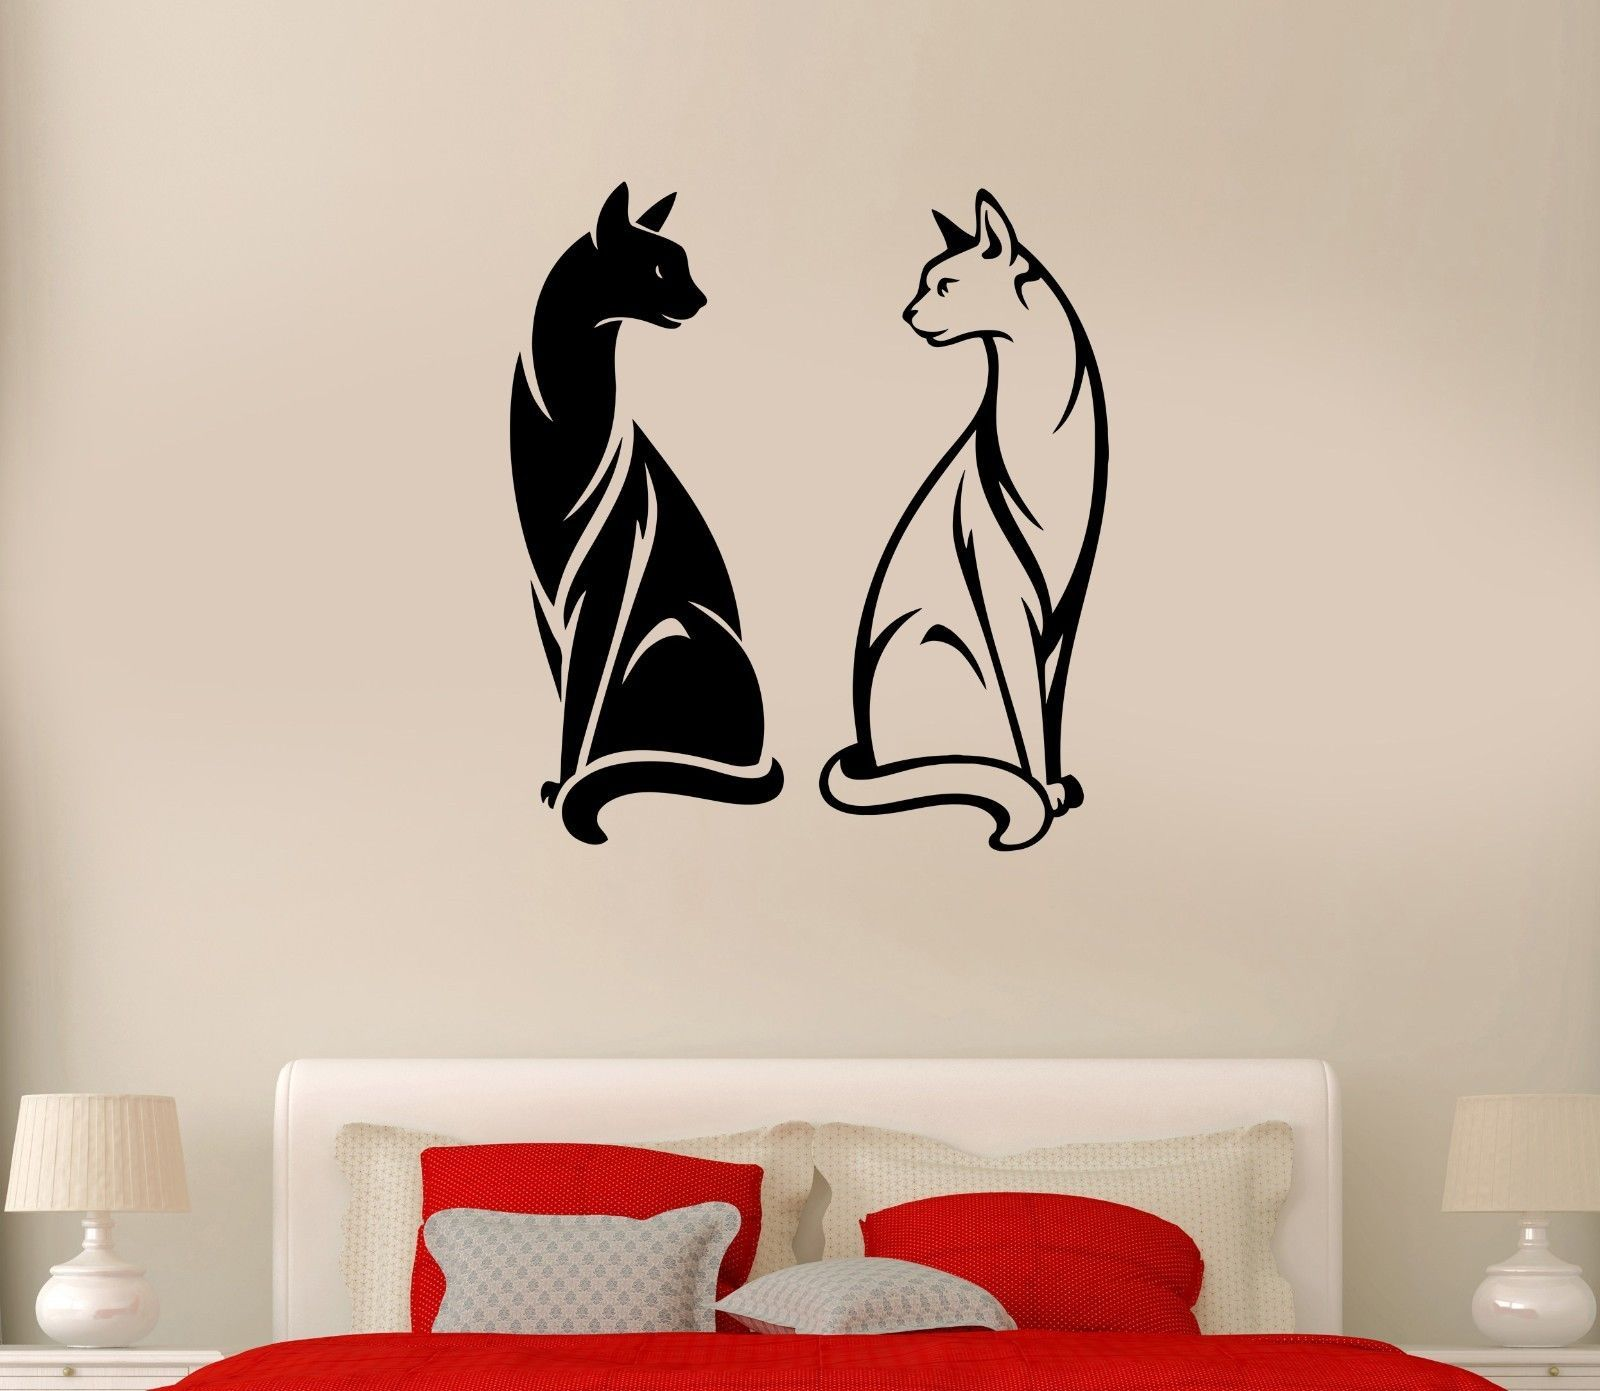 Fashion animal wall decal cats pet animal black and white couple yin